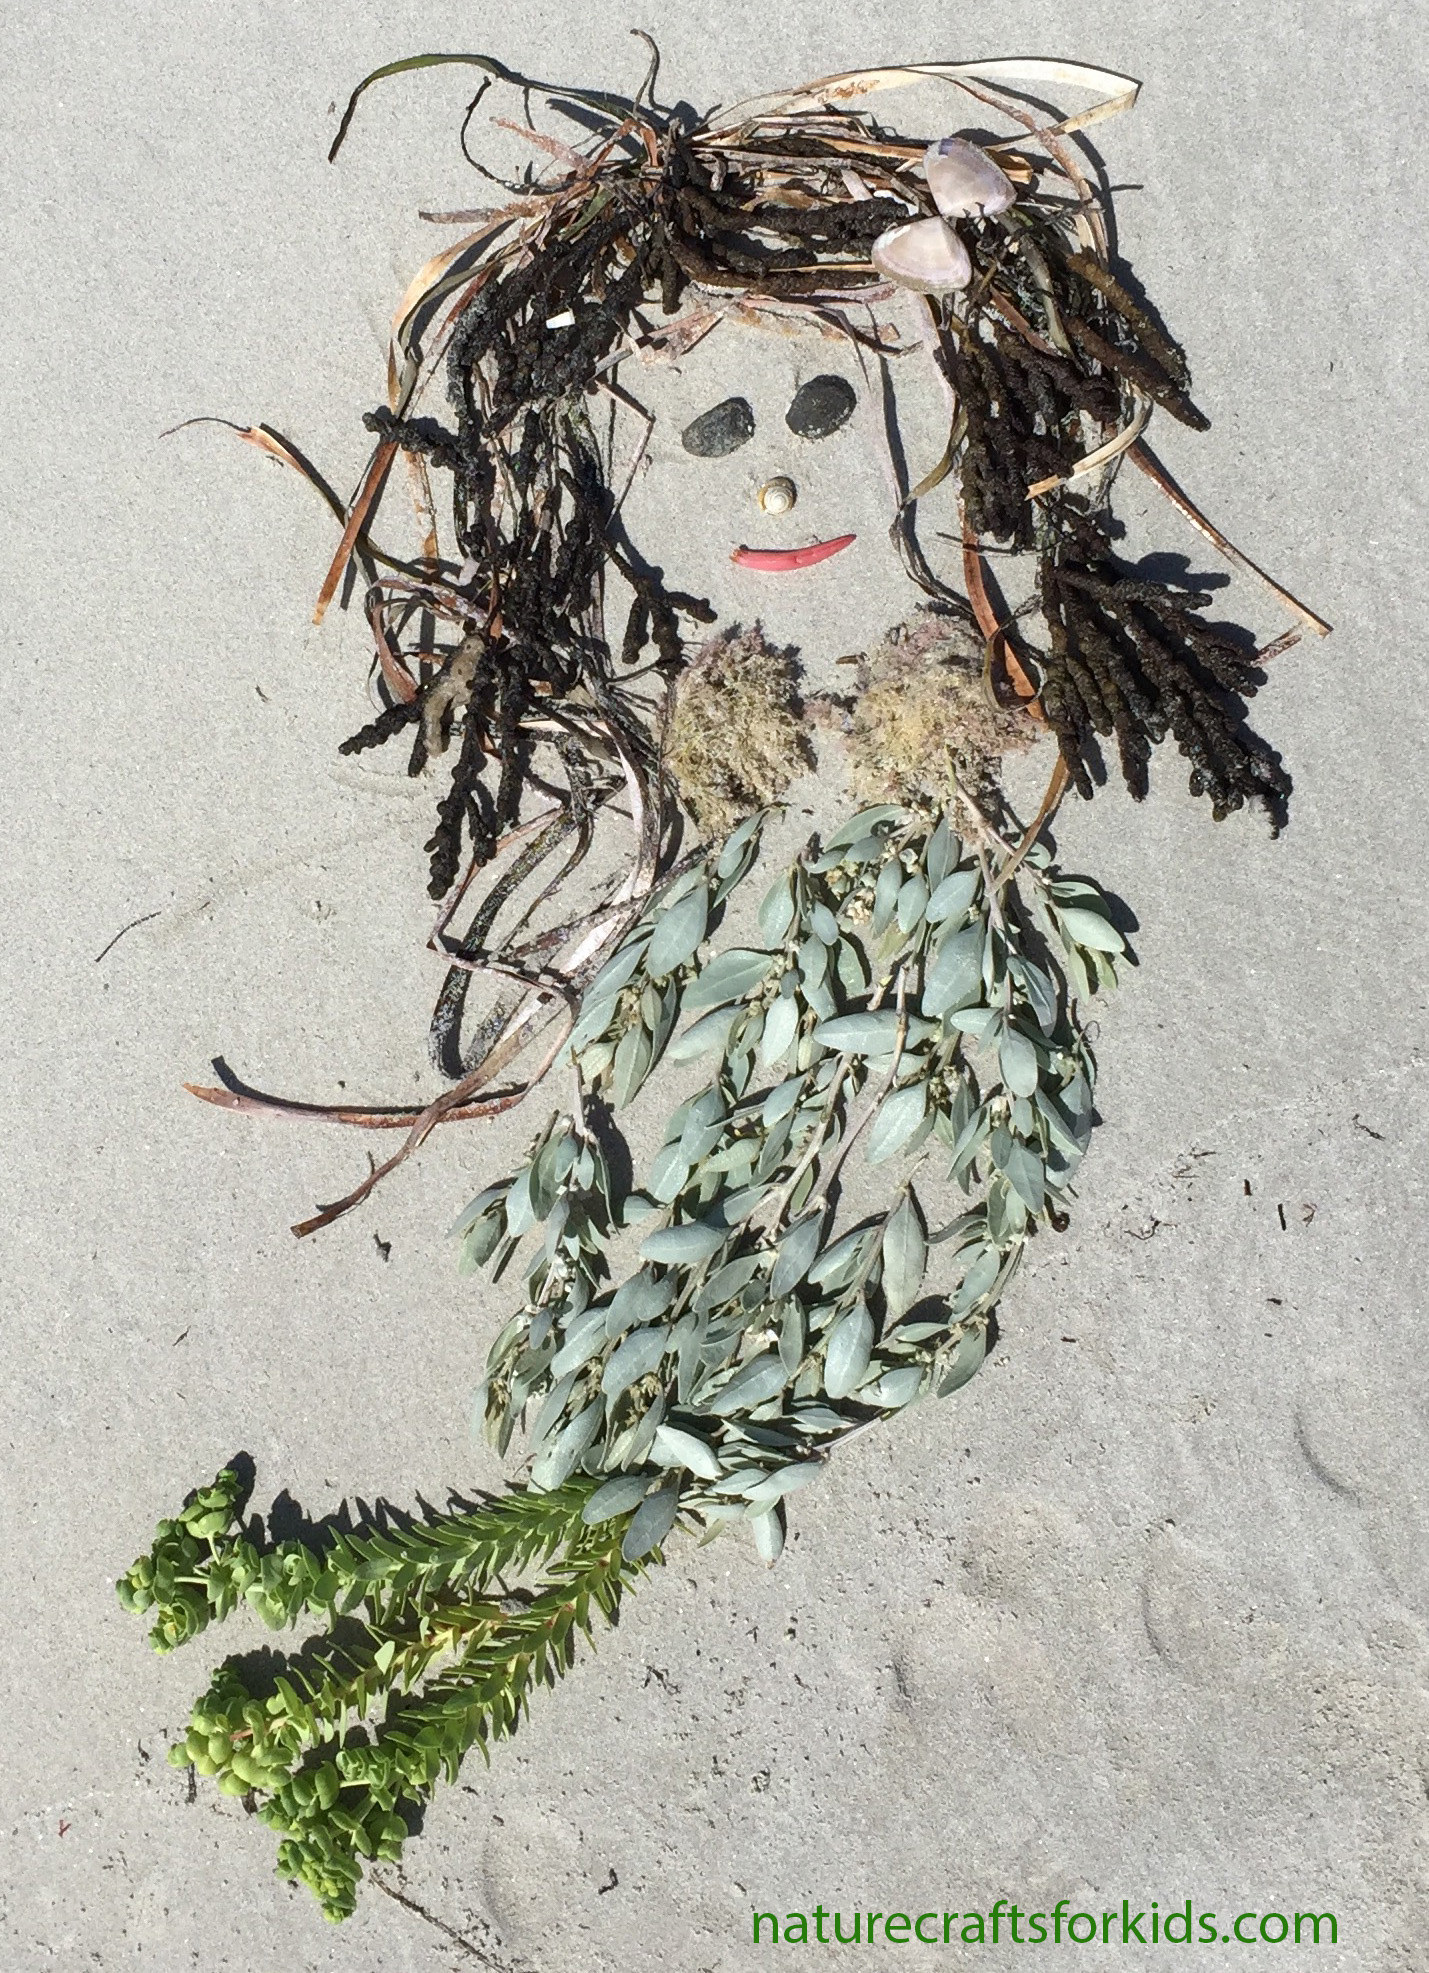 Seaweed-mermaid-land-art-nature-craft